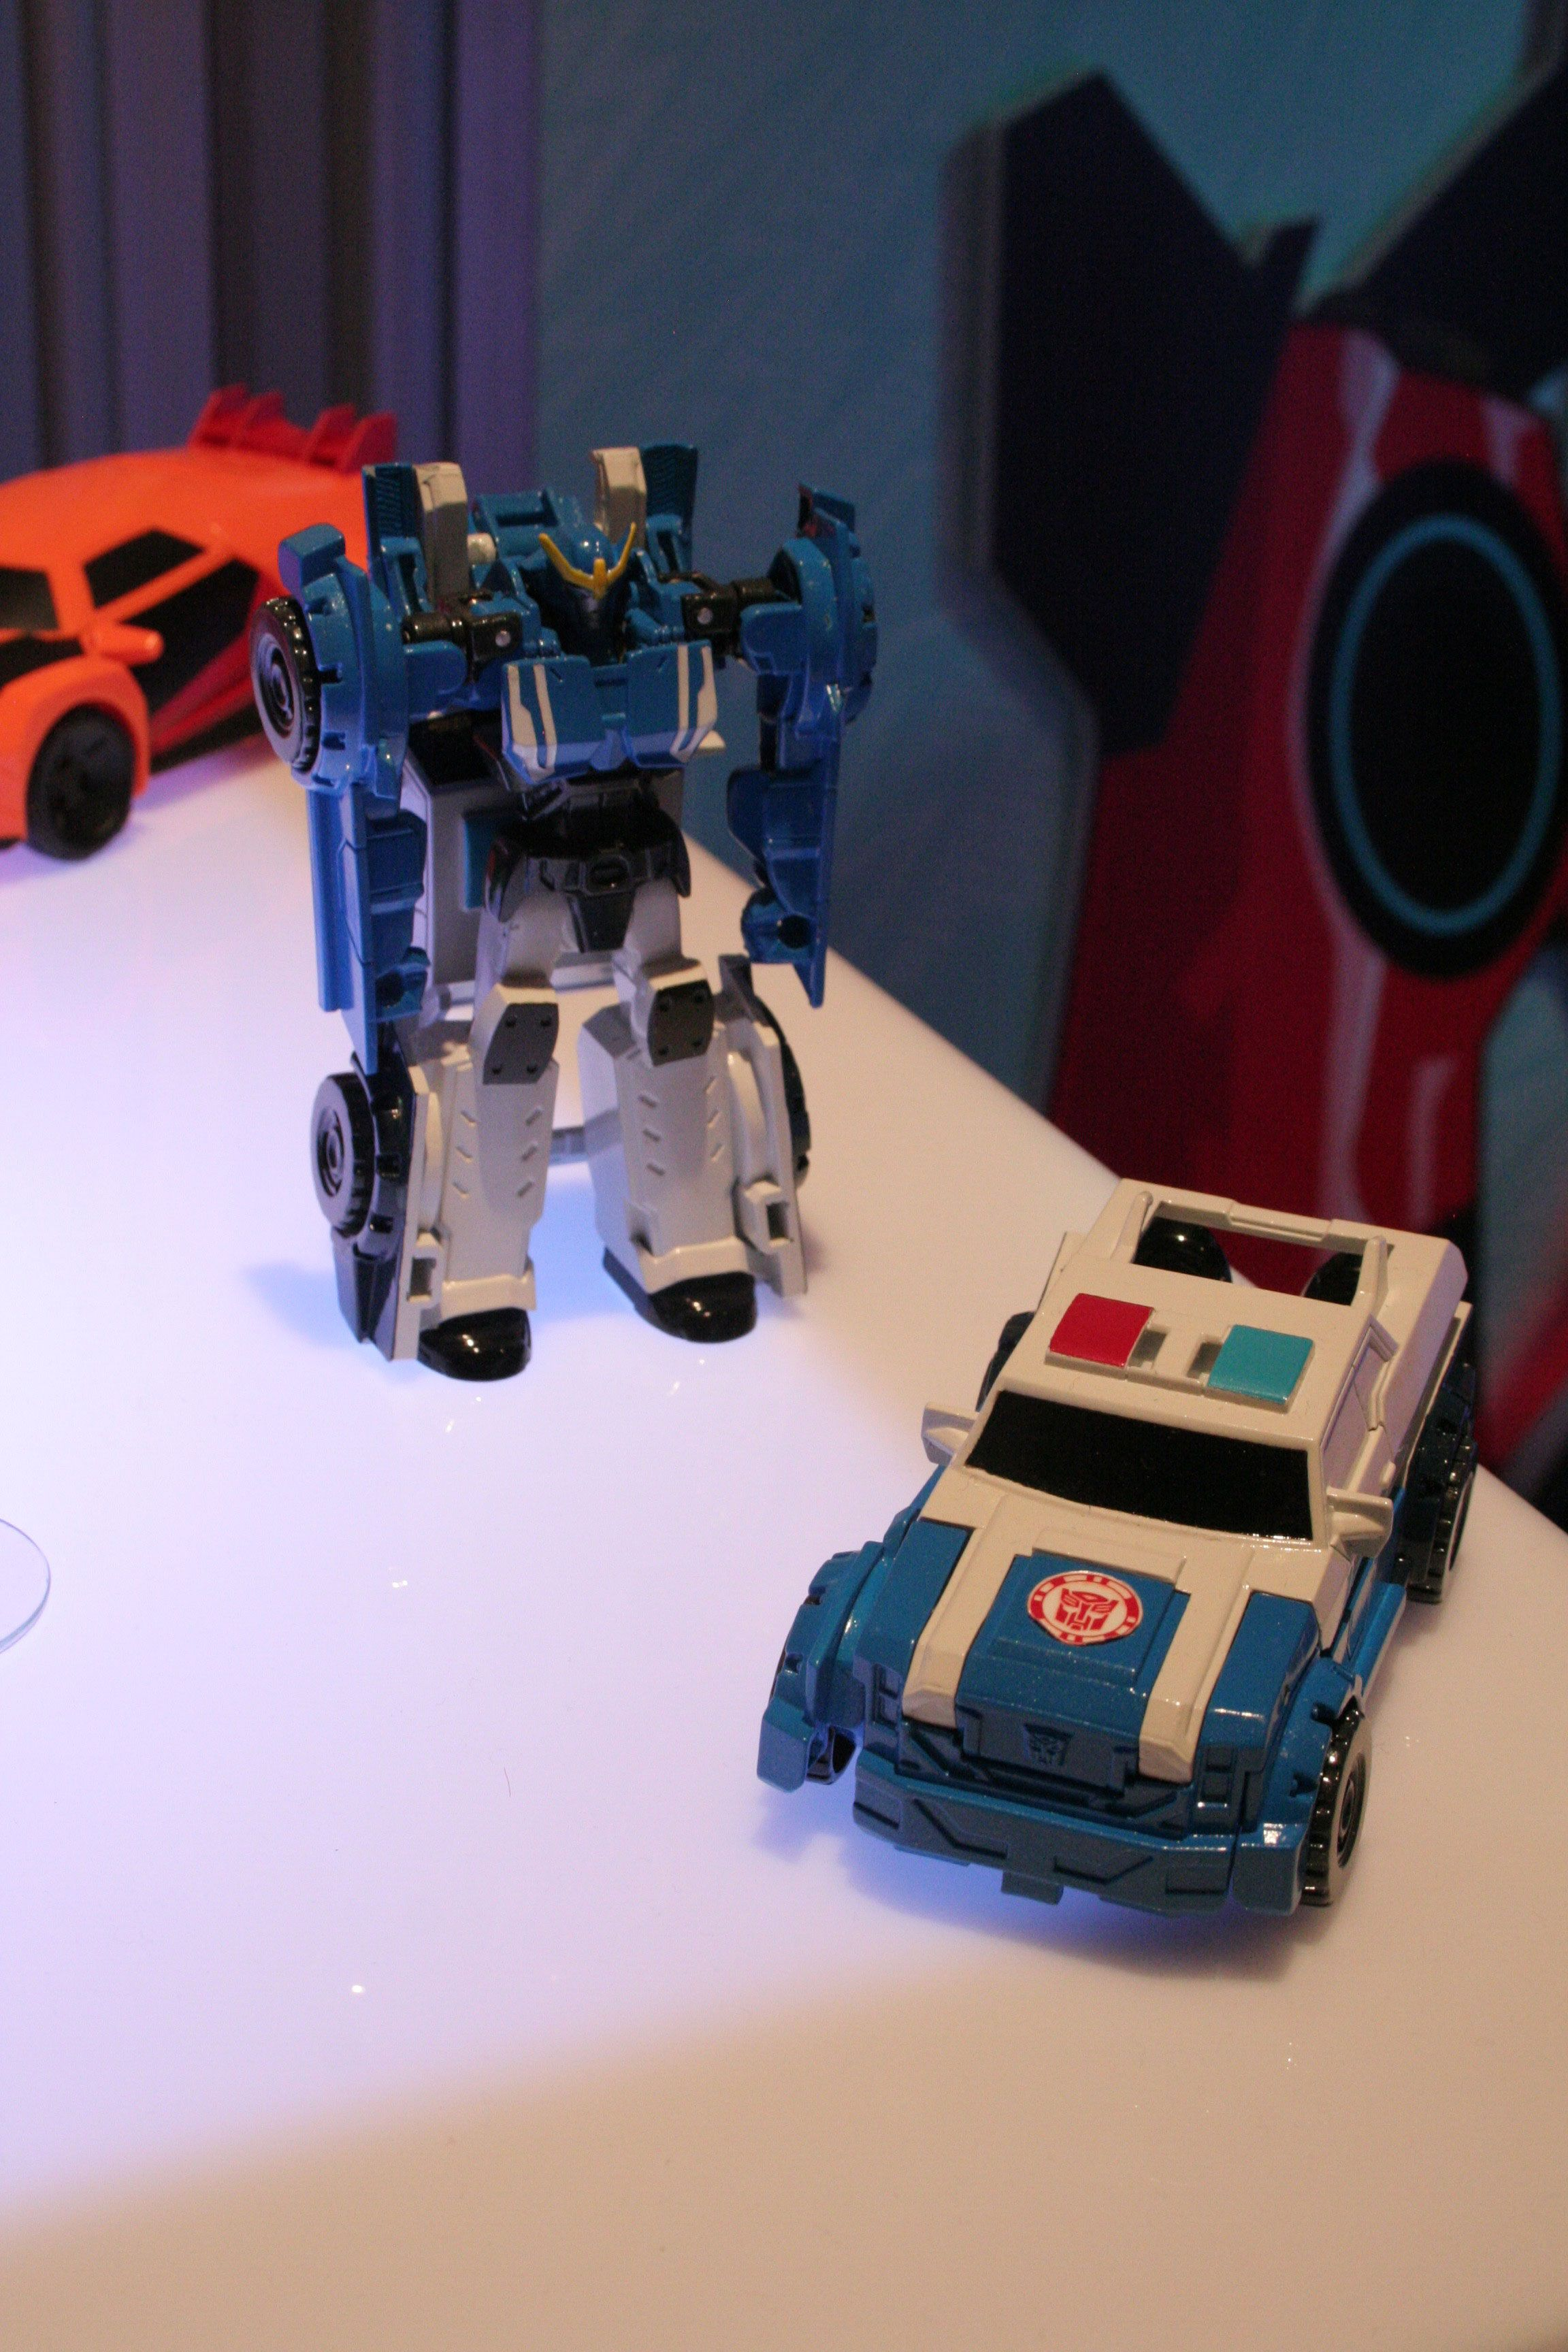 Transformers, Moana Images from Toy Fair 2016 | Collider